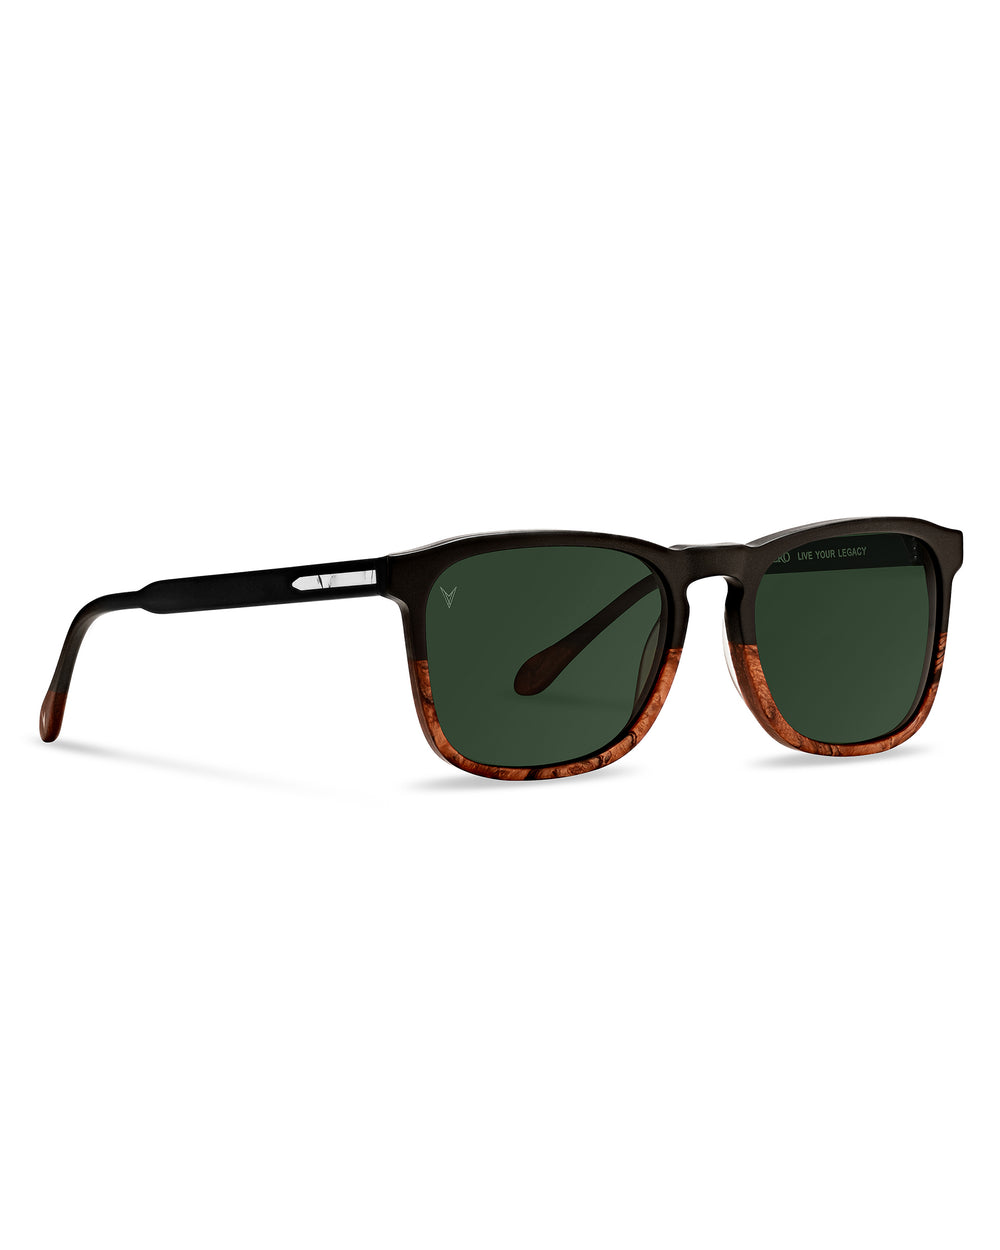 Men's Luxury Matte Black/Walnut Midway Sunglasses